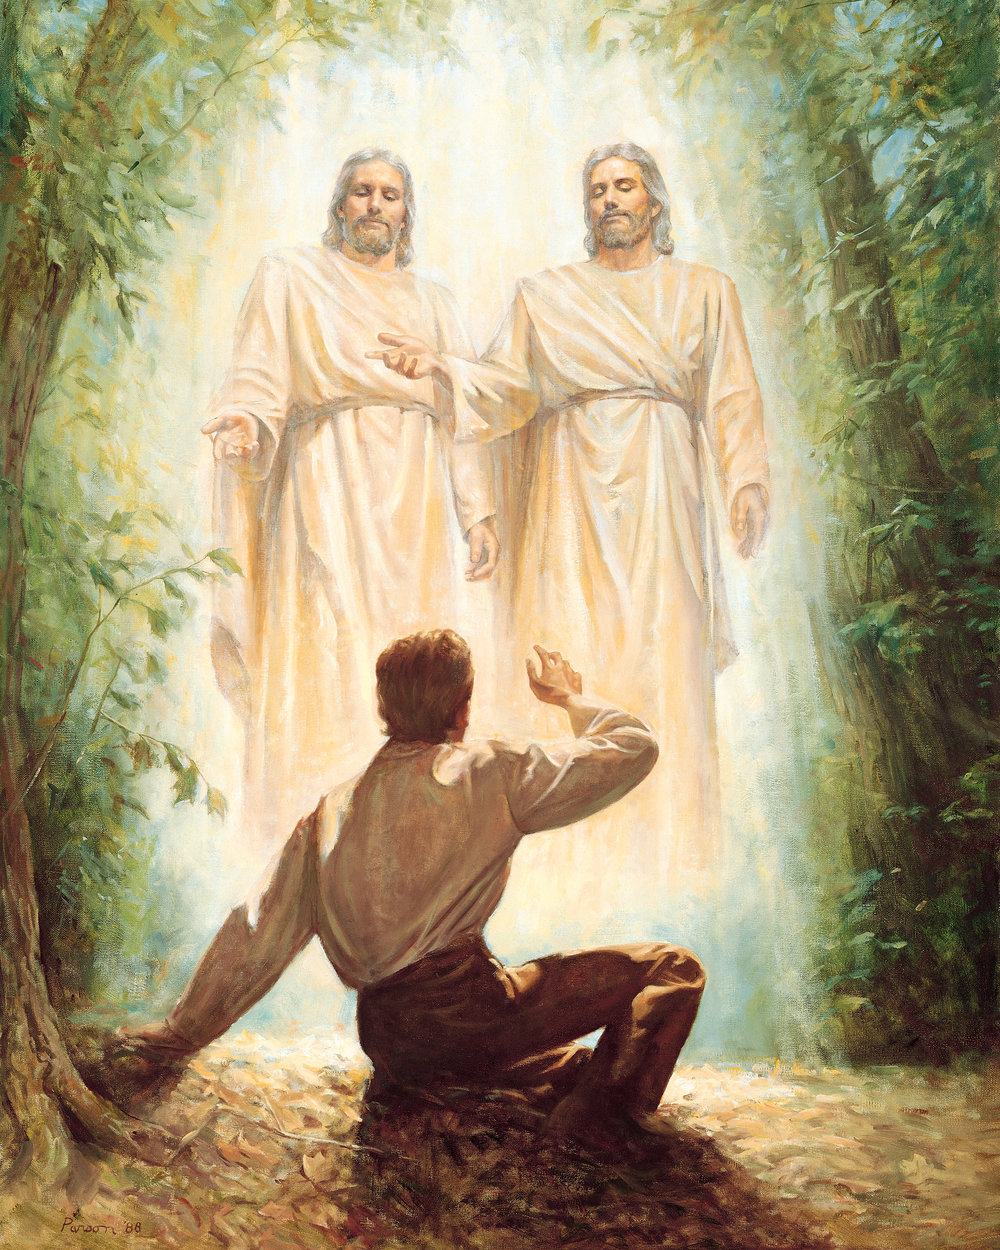 The 1st vision - The official version of Joseph Smith's first vision. Some earlier versions have Jesus visiting him alone, some have Jesus and angels visiting and some have only angels. The official version has the Father and the Son visiting, both with physical bodies.